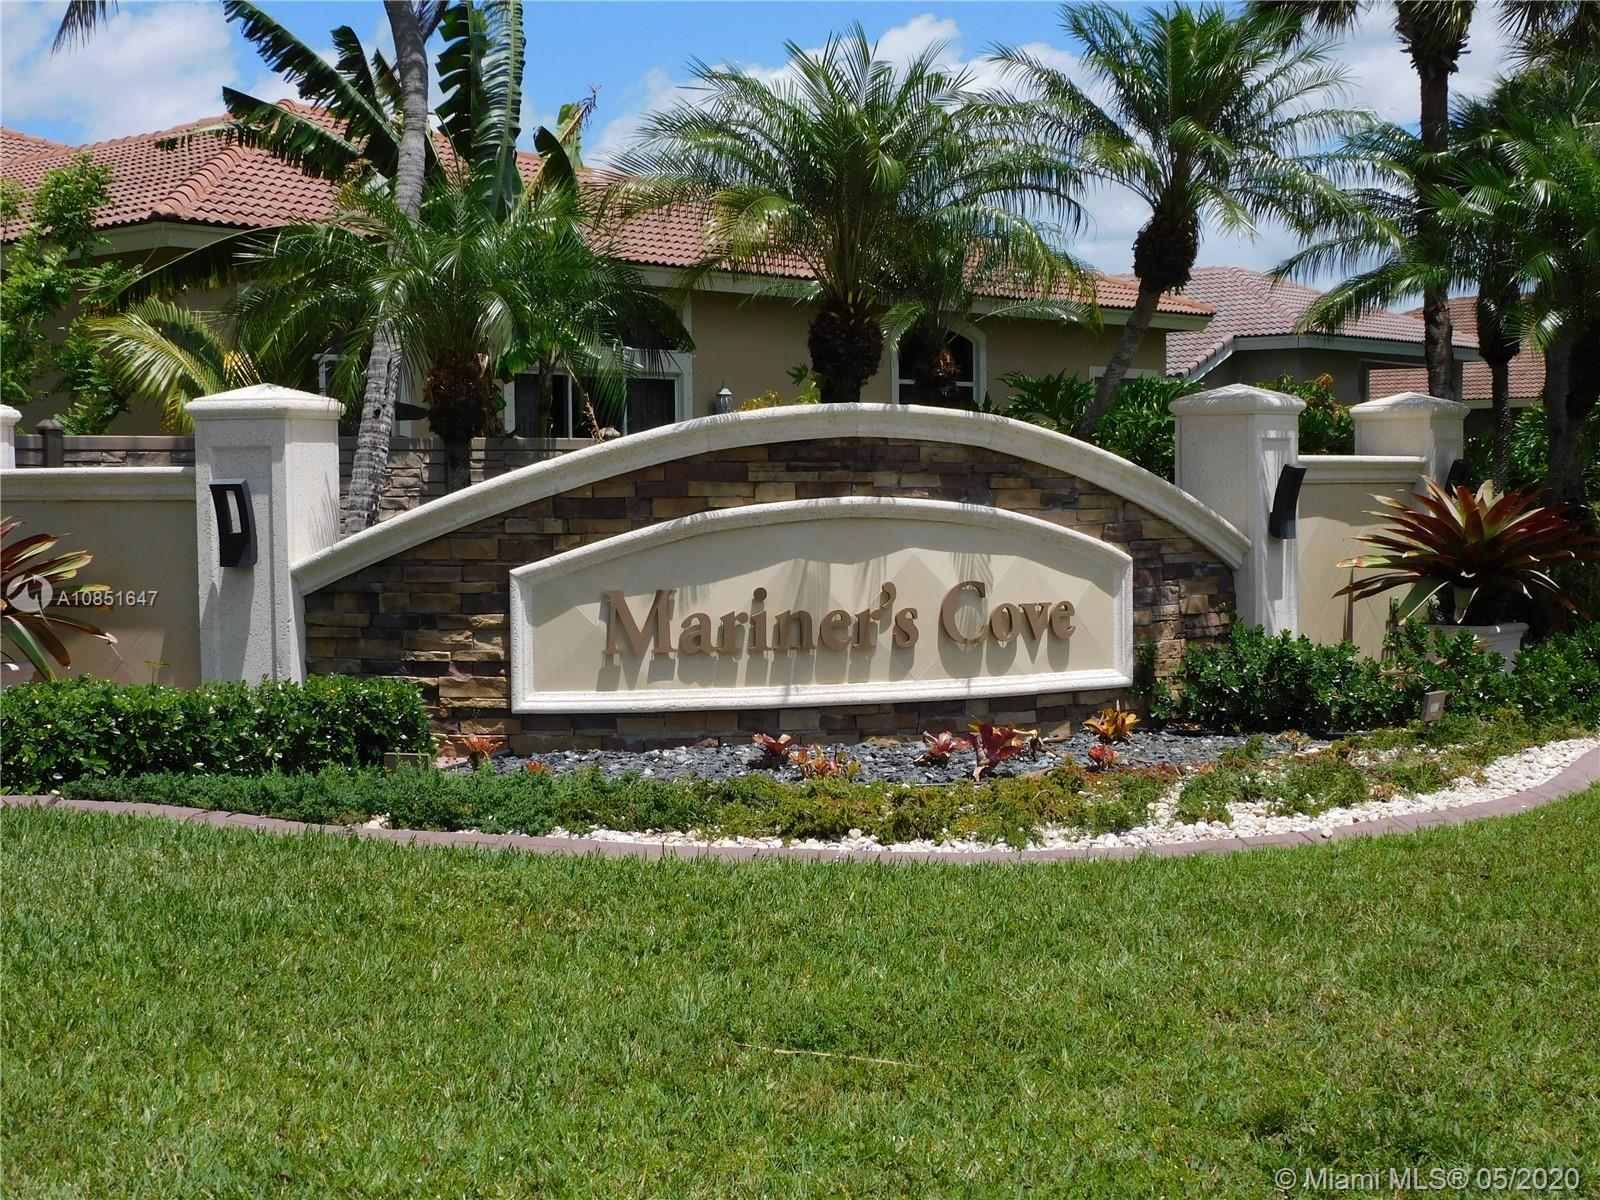 Welcome to Man Gated 24/7 Mariners Cove, canal home where a dock and boat are permitted and feeds into Lake Coral Springs. Main house is a 5 bedroom+ loft with 2 seperate spaces- can be office/den/playroom/gym. There is an additional 1/1 Guest House right off the Courtyard Pool with private entrance. Upgraded newer kitchen with wood,Omega  Cabinets, granite counter tops, SS appliances. High ceiling, crown moldings and Teak wood floors in all social areas add elegance to this unique home. 3 car garage and driveway that can accomodate up to 6 more cars. Great home to entertain.